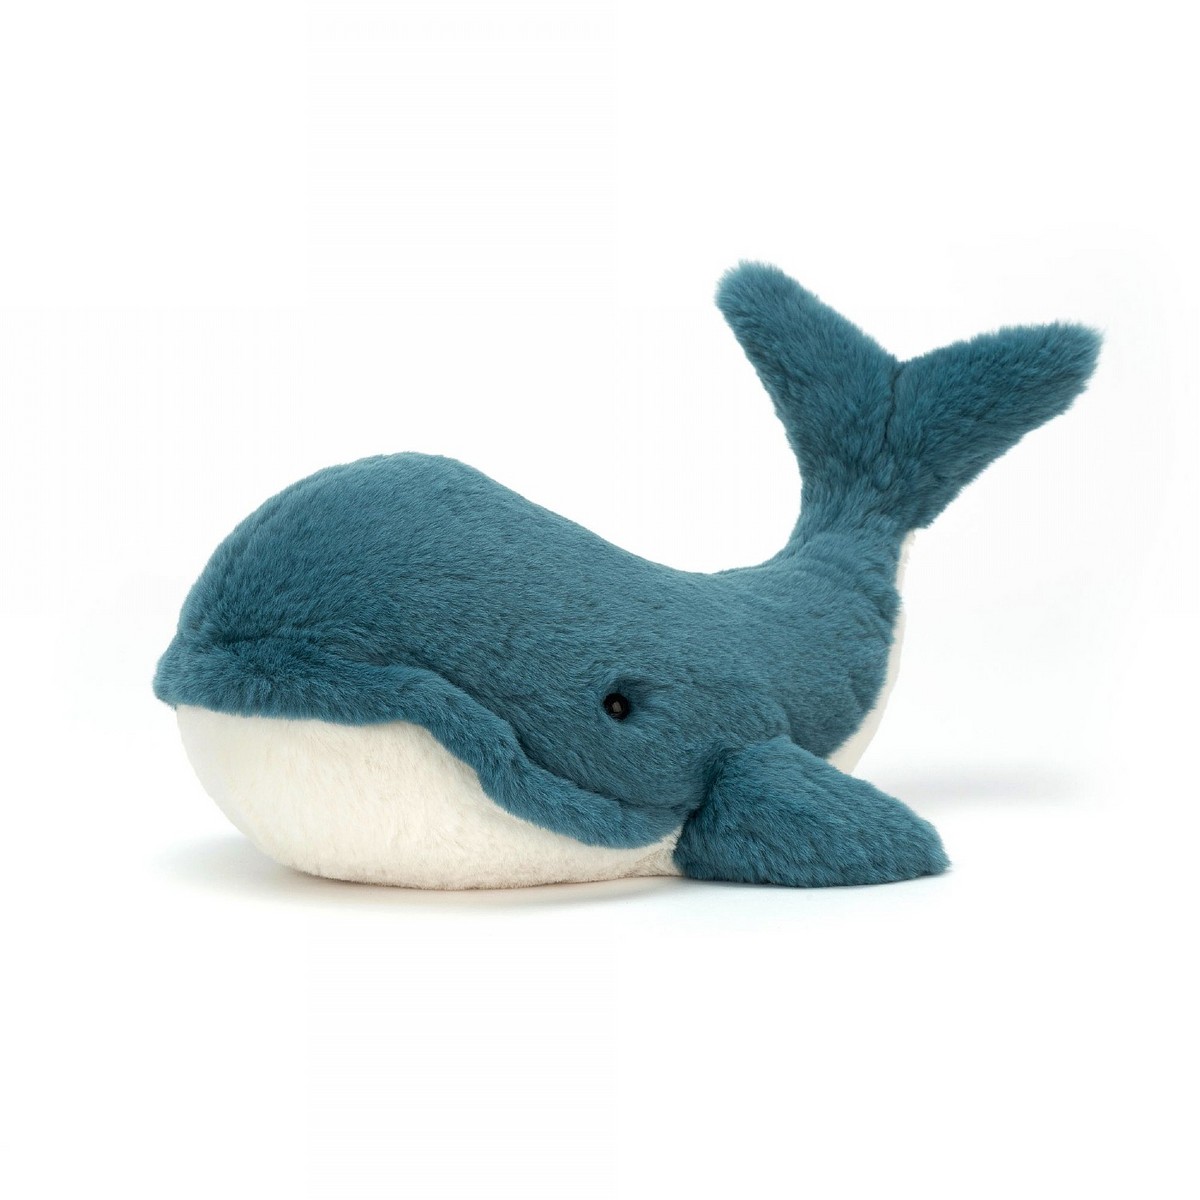 Wally Whale - Tiny - Heart of the Home PA